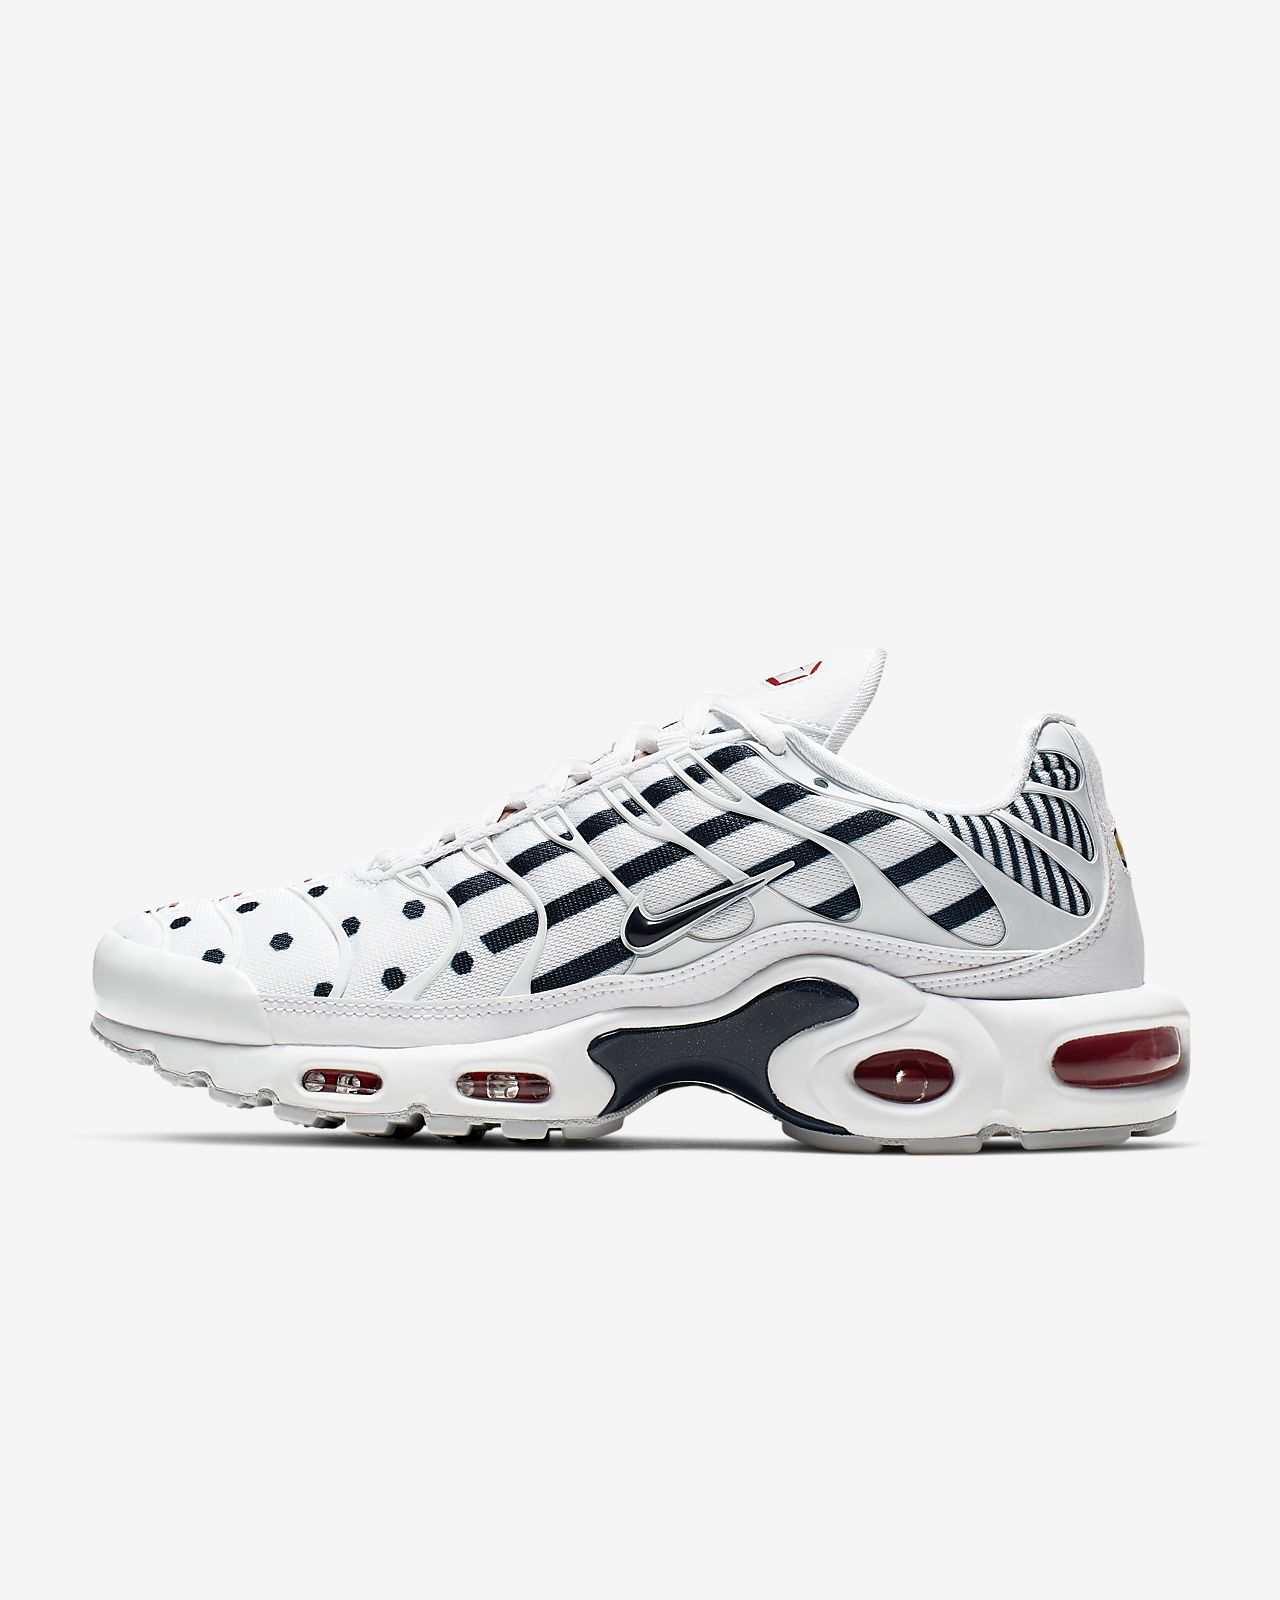 Sko Nike Air Max Plus TN Unité Totale för kvinnor